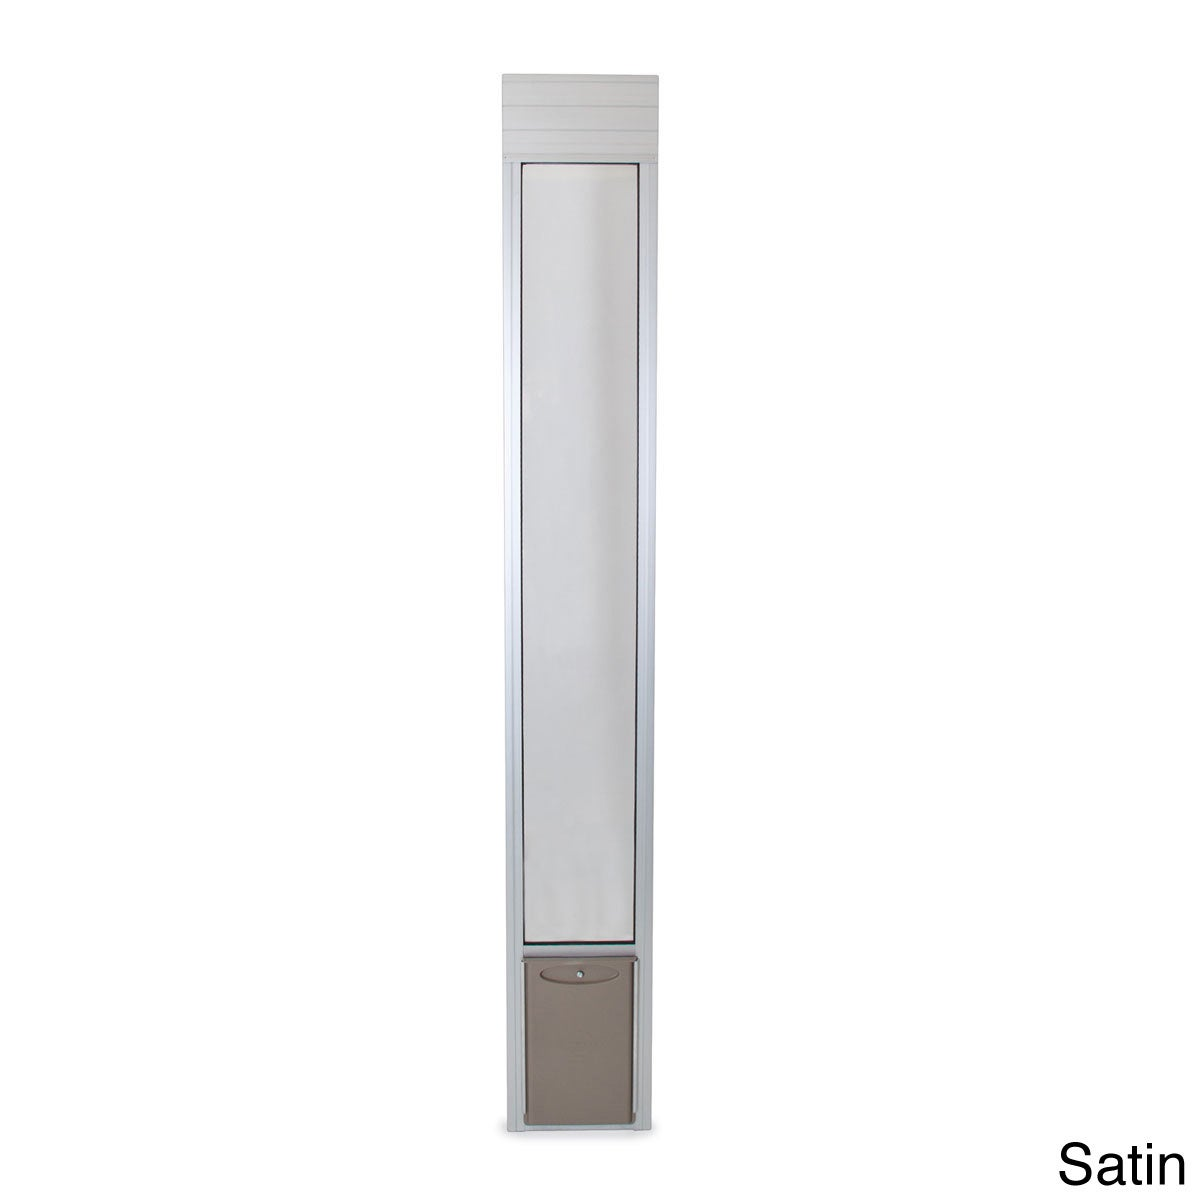 1200 #61564F PetSafe Freedom Patio Aluminum Panel Pet Door Overstock Shopping  pic Overstock Patio Doors 35611200